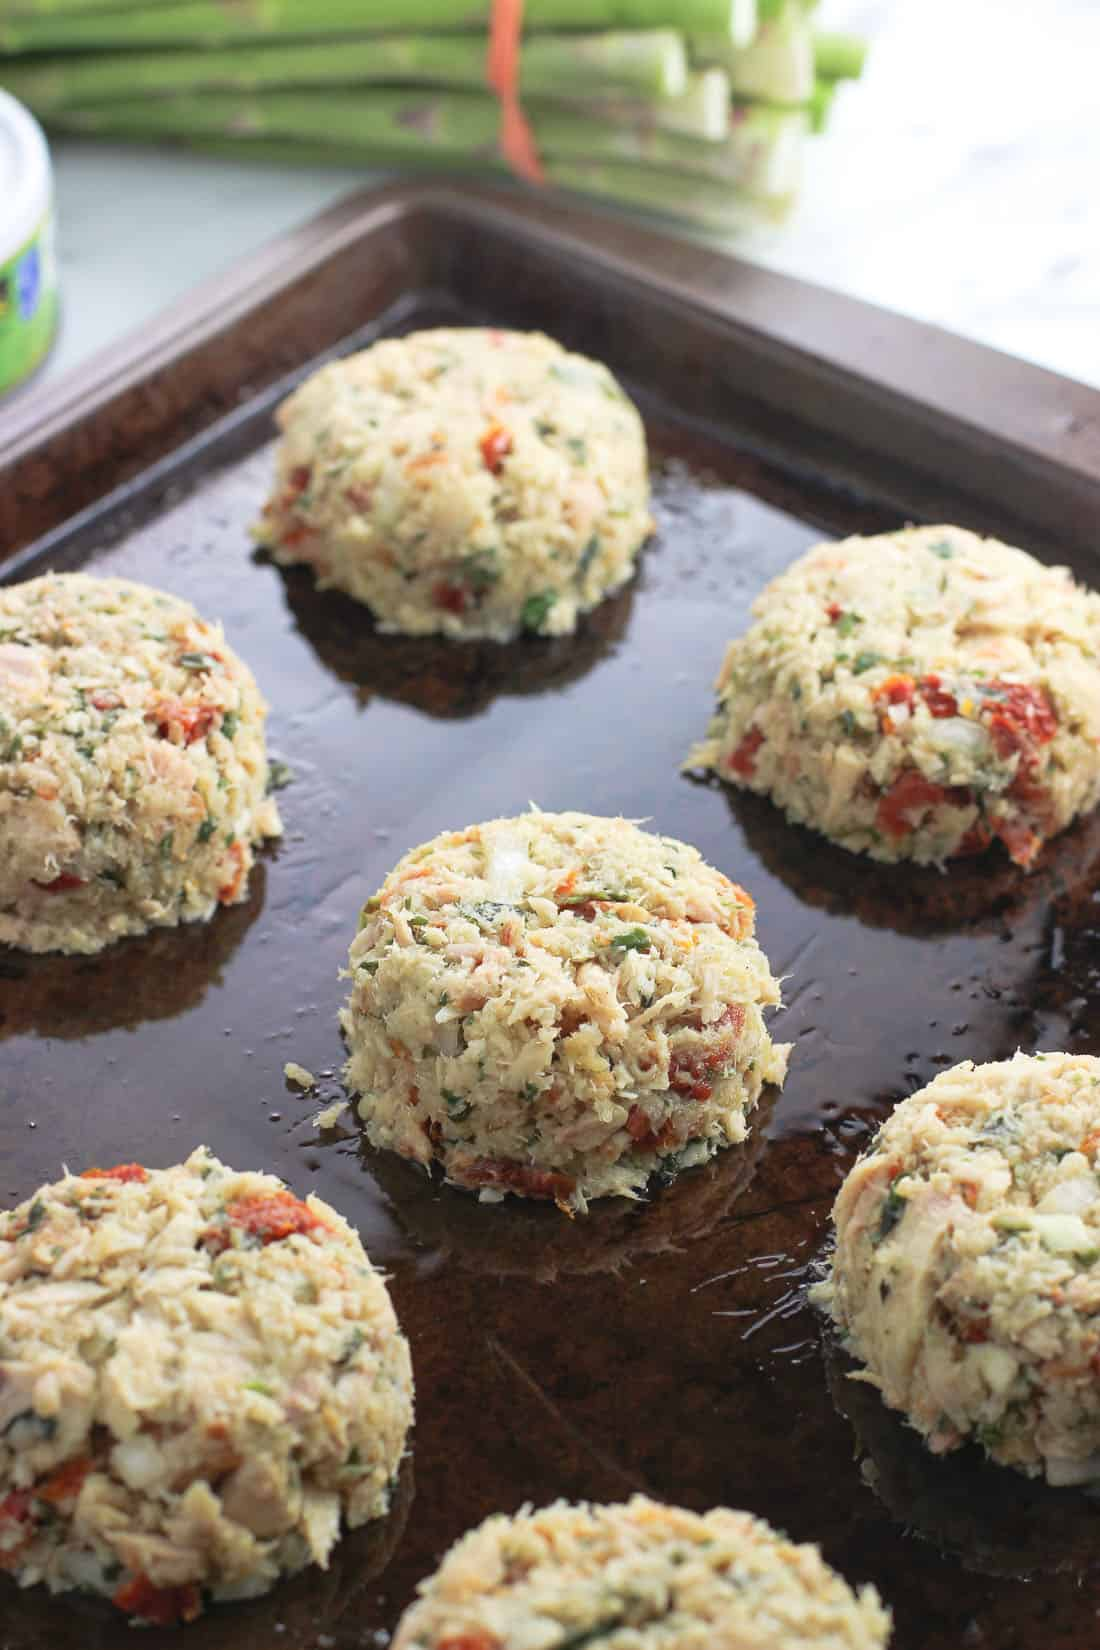 Formed tuna cake mixture on a sprayed metal baking sheet before being baked